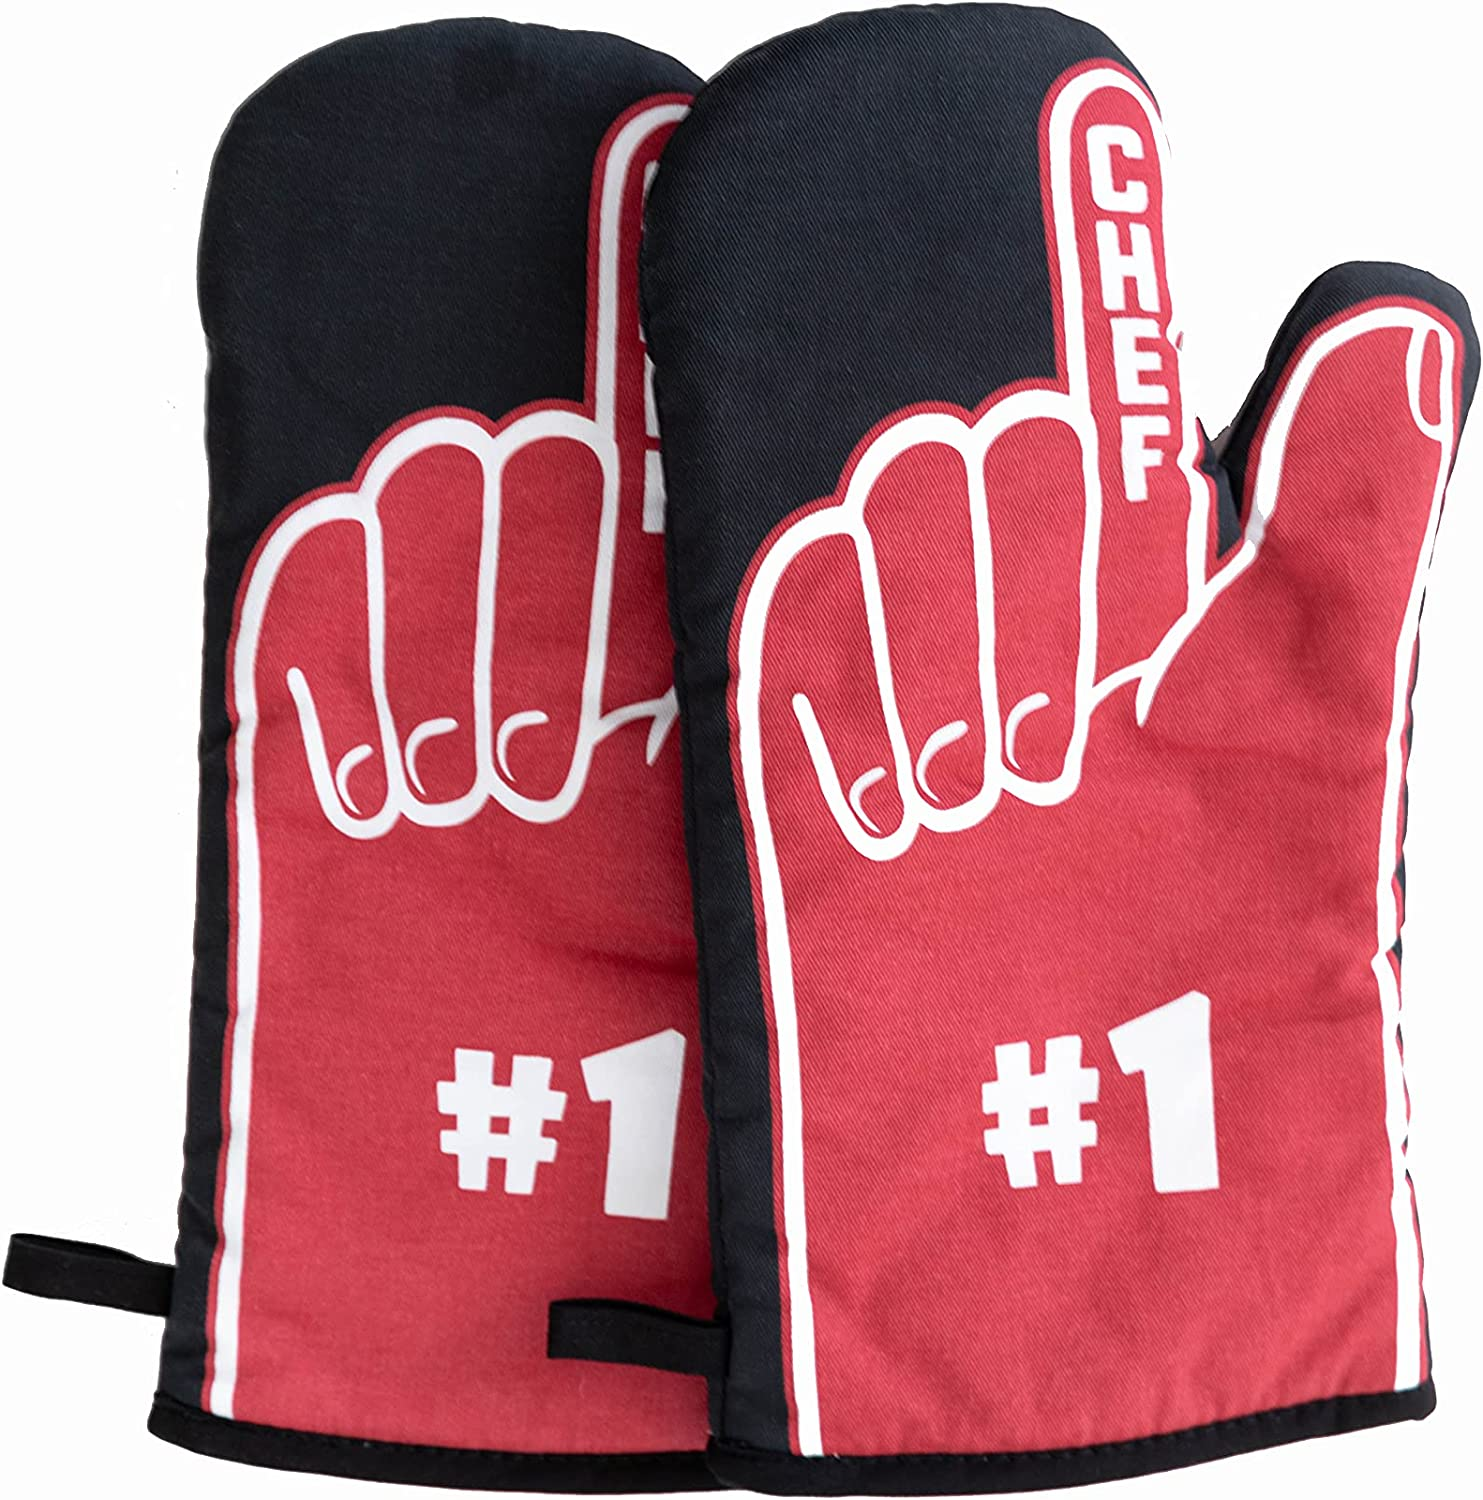 Papa Ray's Premium Oven Mitts, 480F Heat Resistant Cotton Pair of Oven Gloves With #1 Fan Cool Design - Long Protective Kitchen Gloves With Soft Cotton Lining - Fun Kitchen Gift for Baking - Red Black